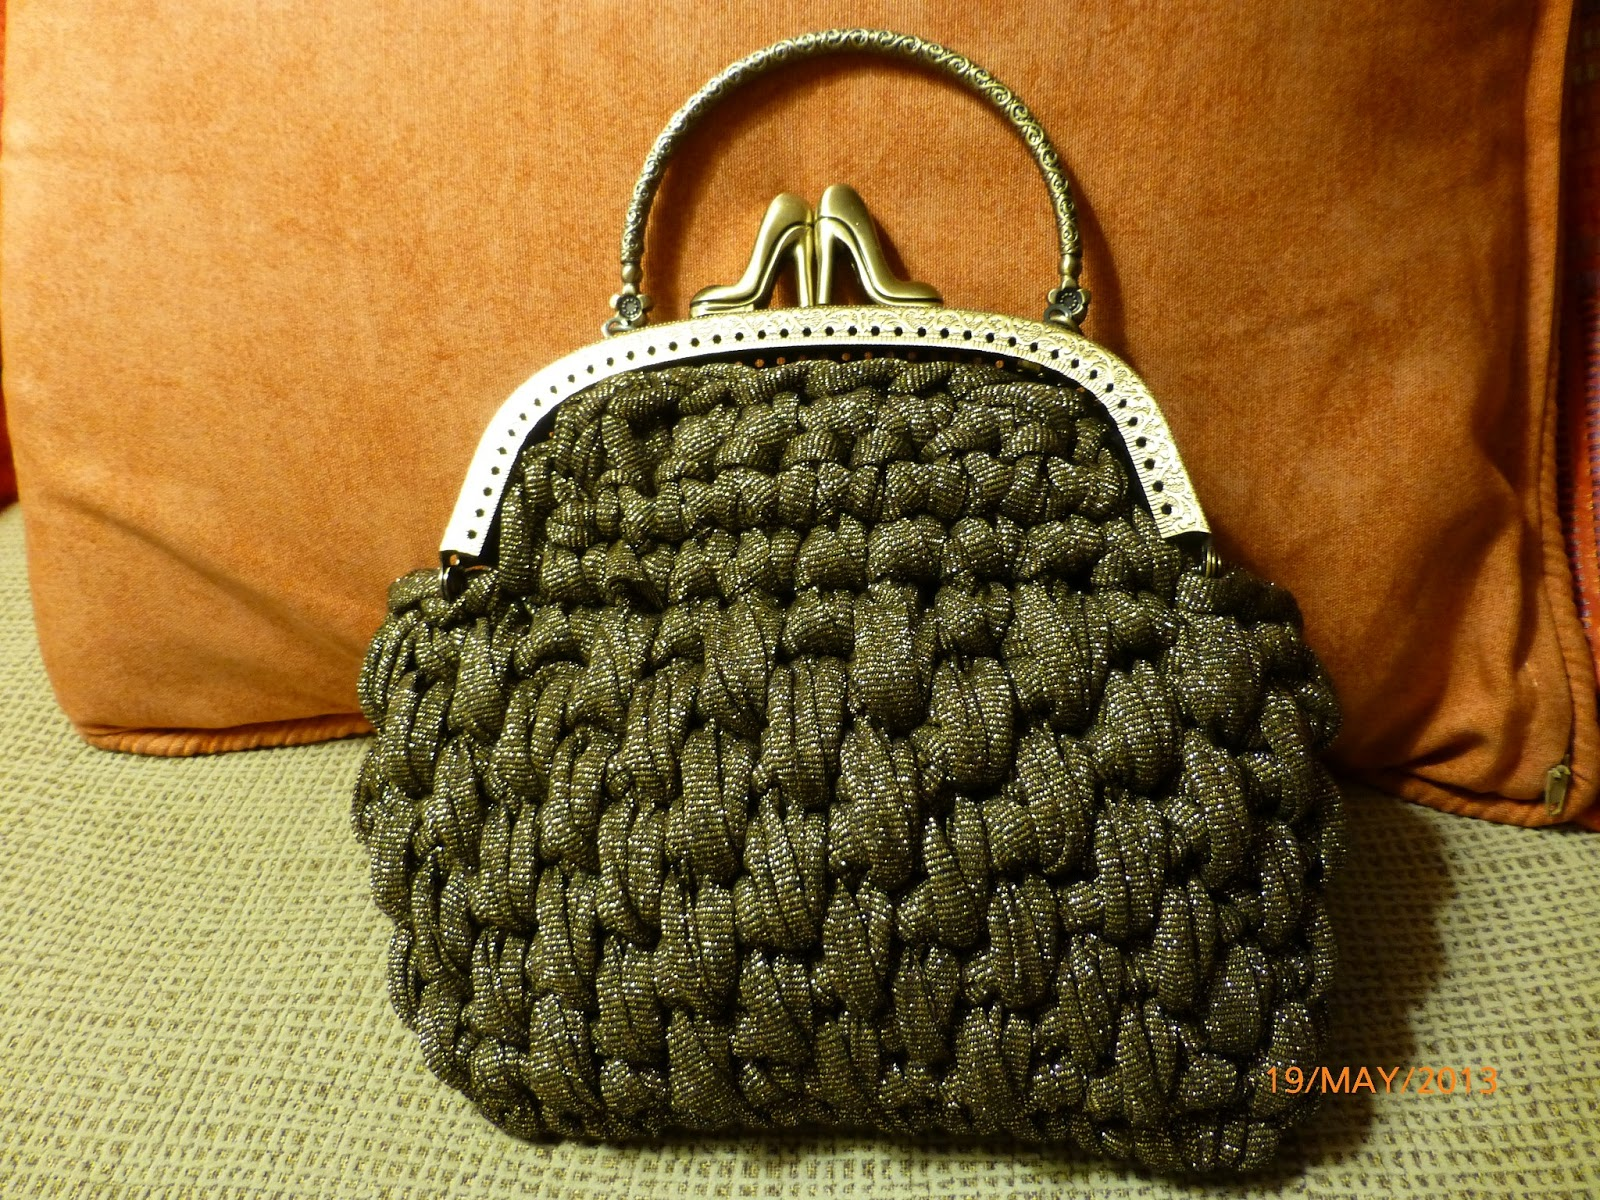 Marta 39 s crochet projects bolso de vestir de trapillo for Bolsos de crochet de trapillo